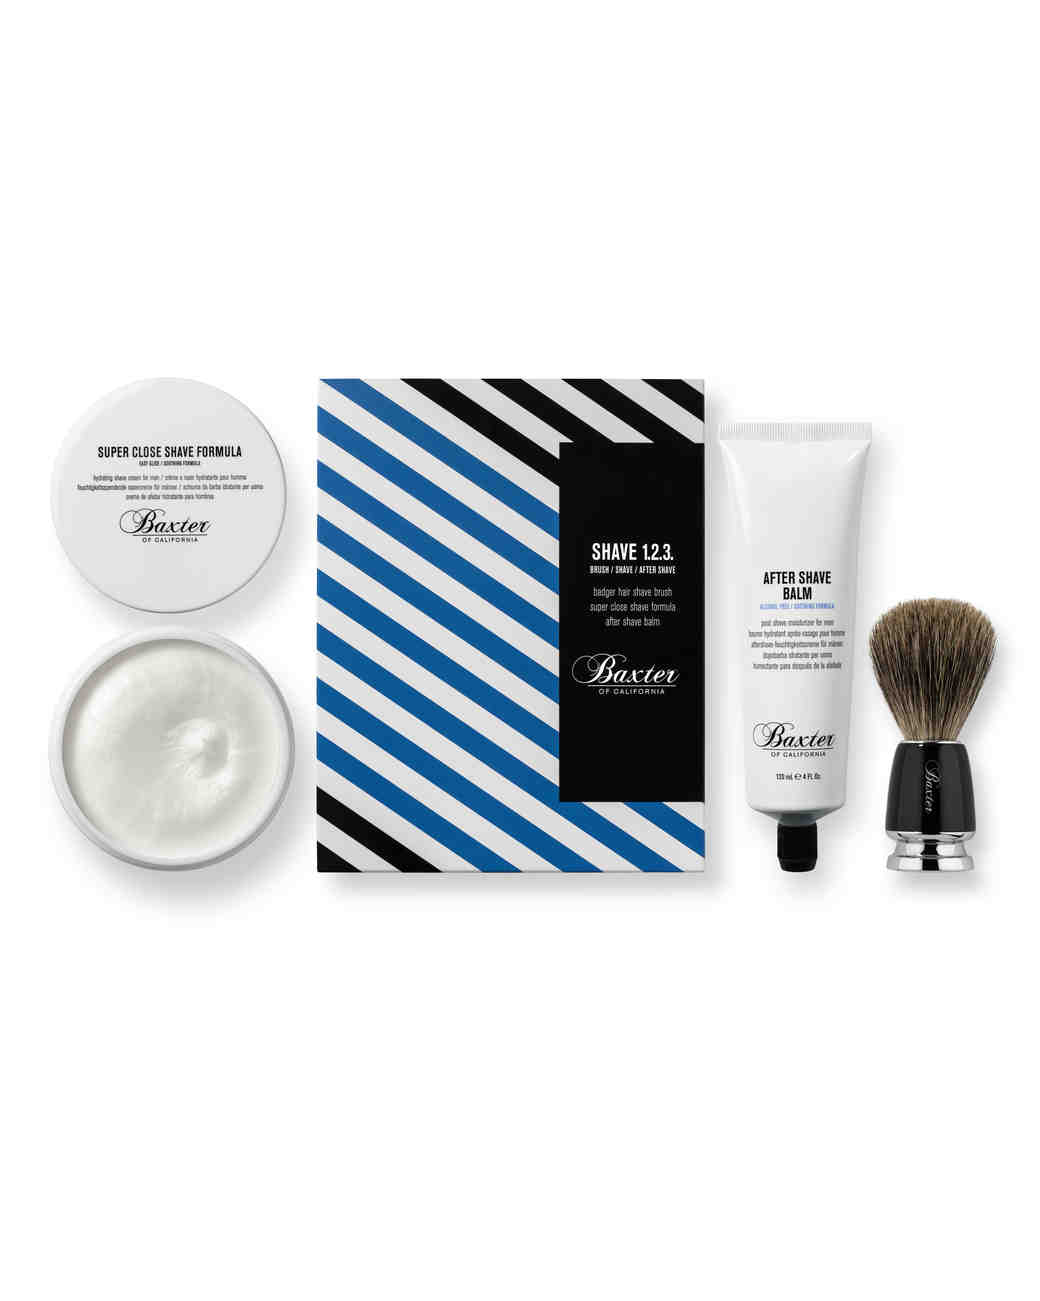 fathers-gift-guide-grooming-baxter-shave-set-0515.jpg